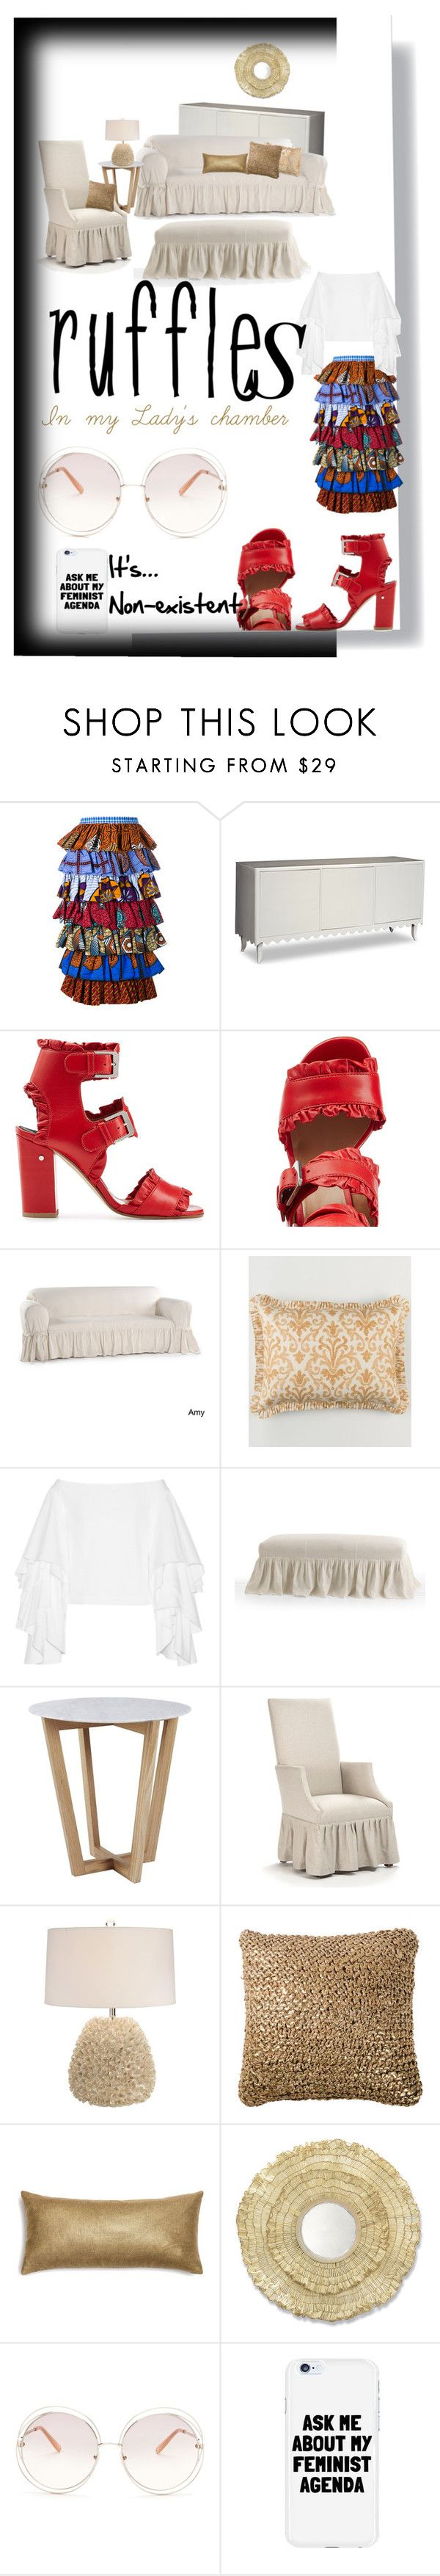 """""""In my lady's chamber"""" by rhaxkido ❤ liked on Polyvore featuring Stella Jean, Laurence Dacade, Country Curtains, Rosie Assoulin, Lisa Luby Ryan, Palecek, Chloé and ruffles"""